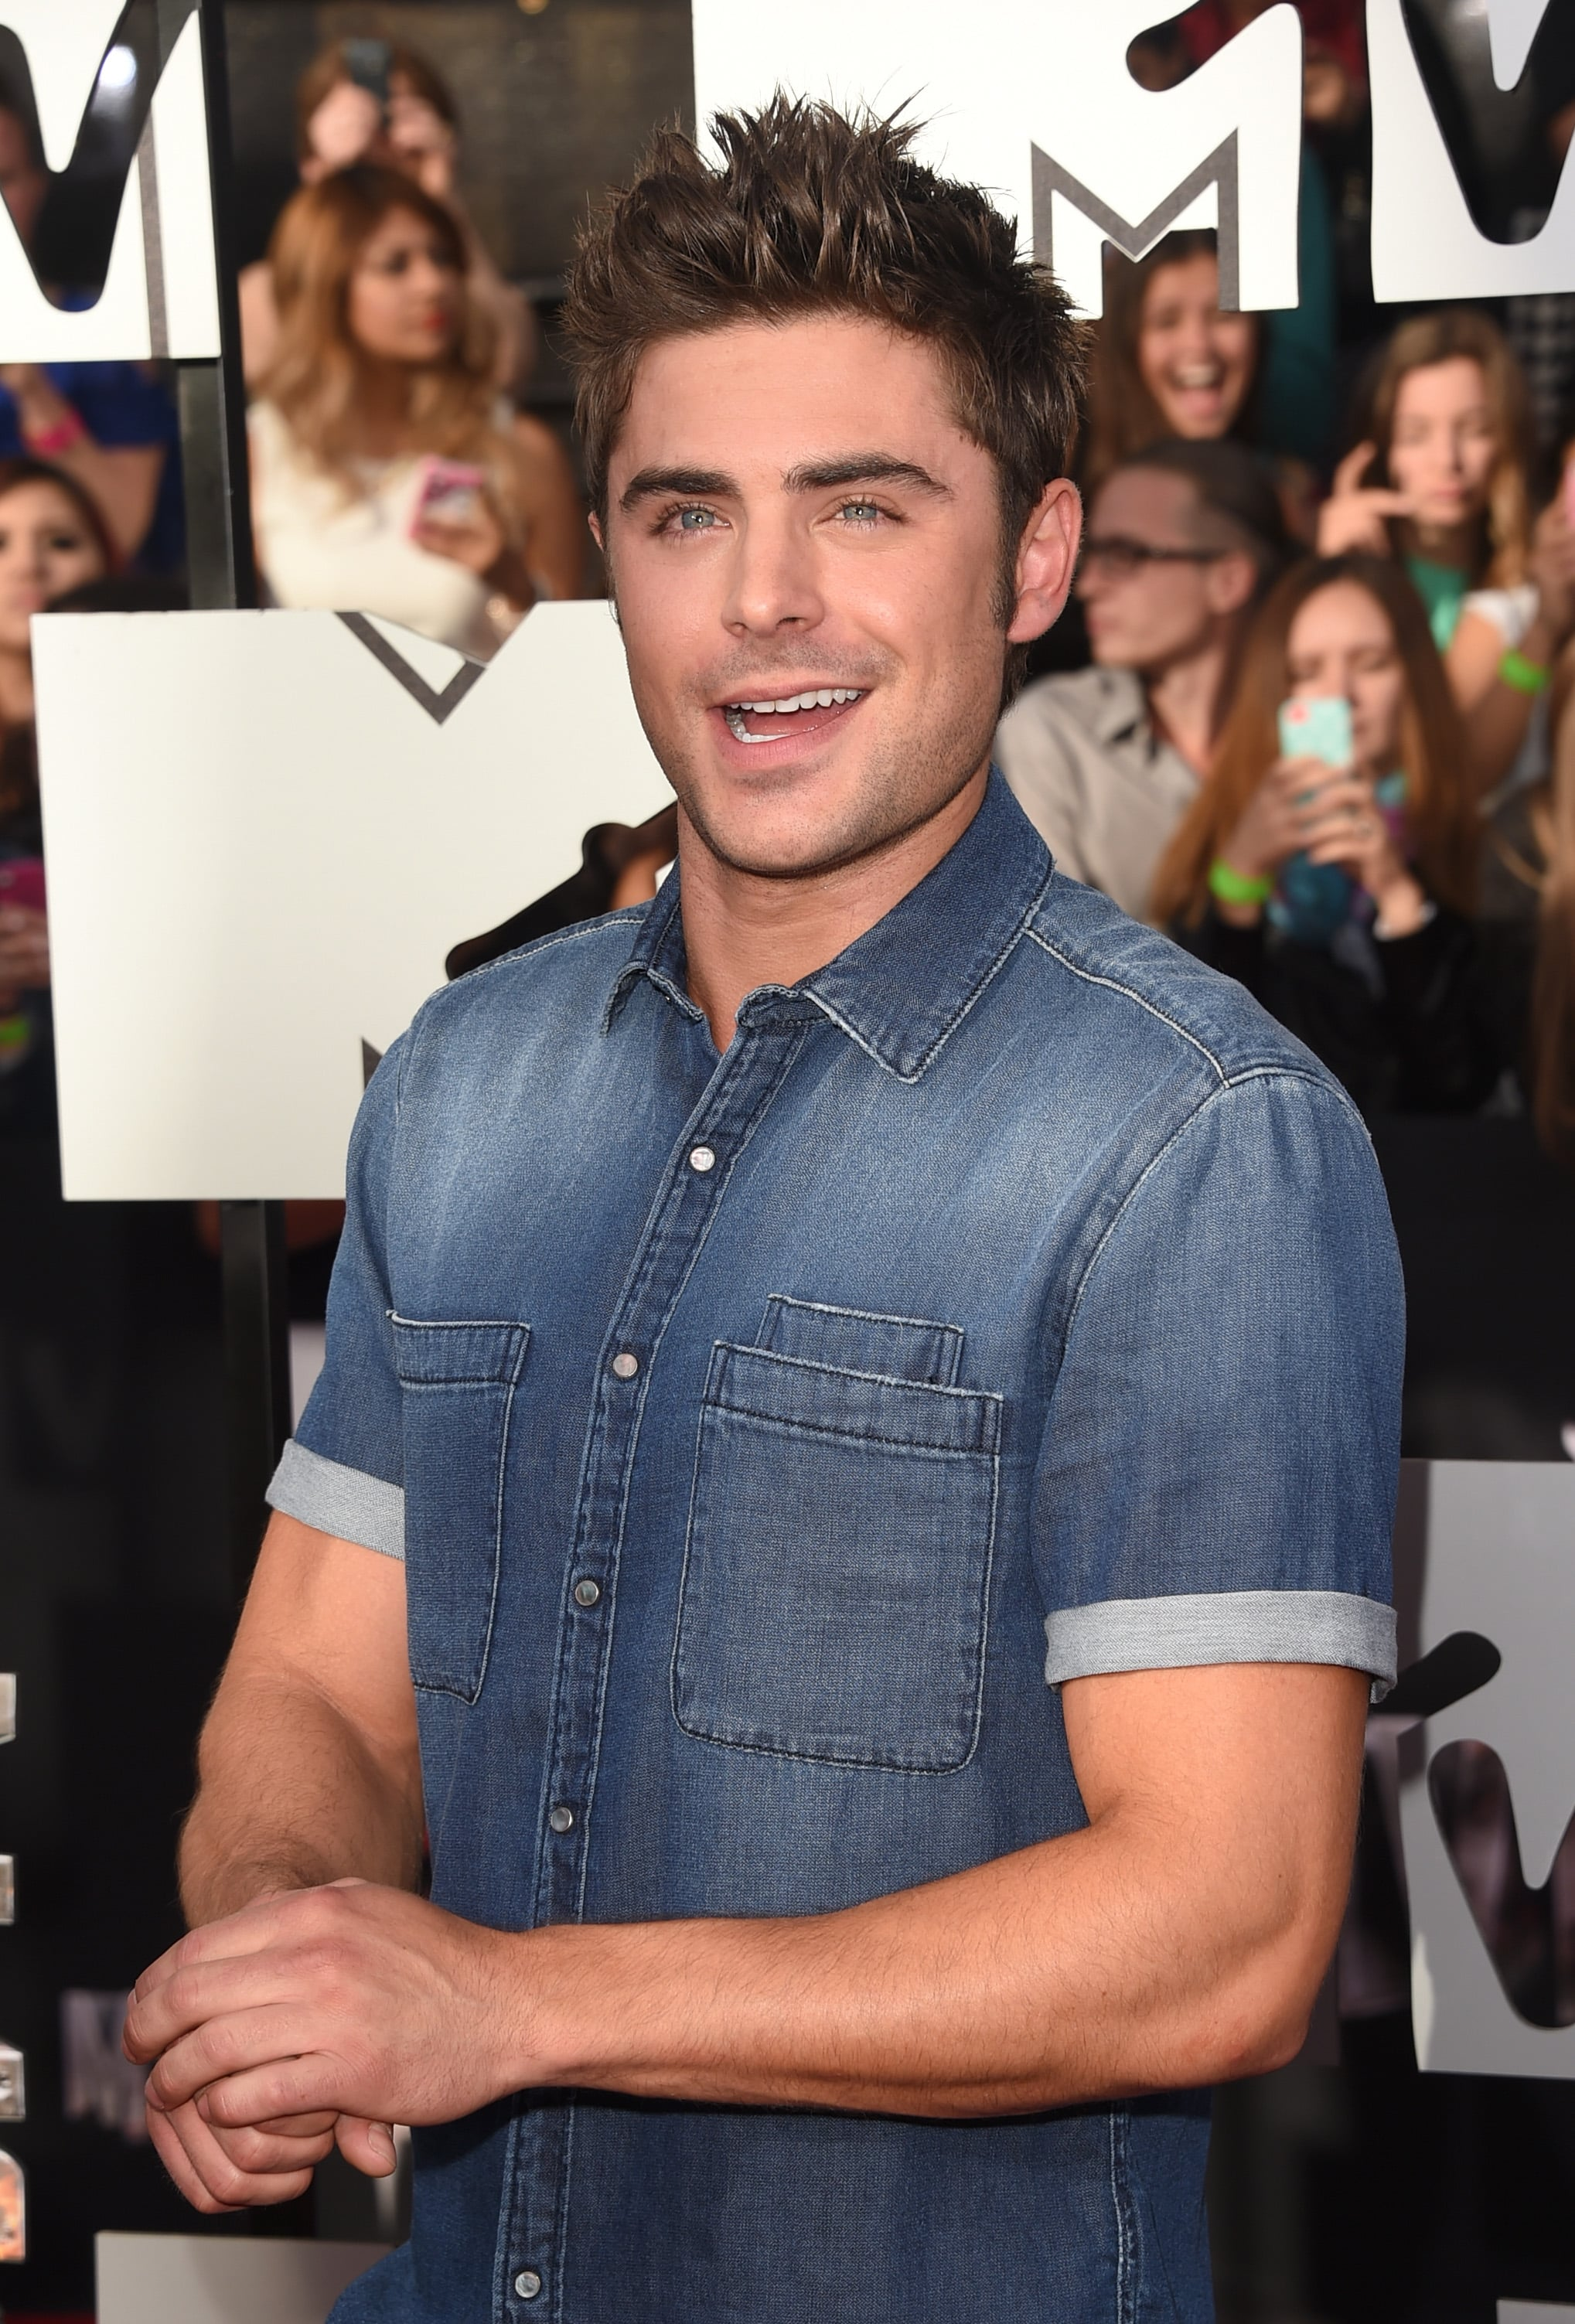 Zac Efron Does Denim and Selfies at the MTV Movie Awards